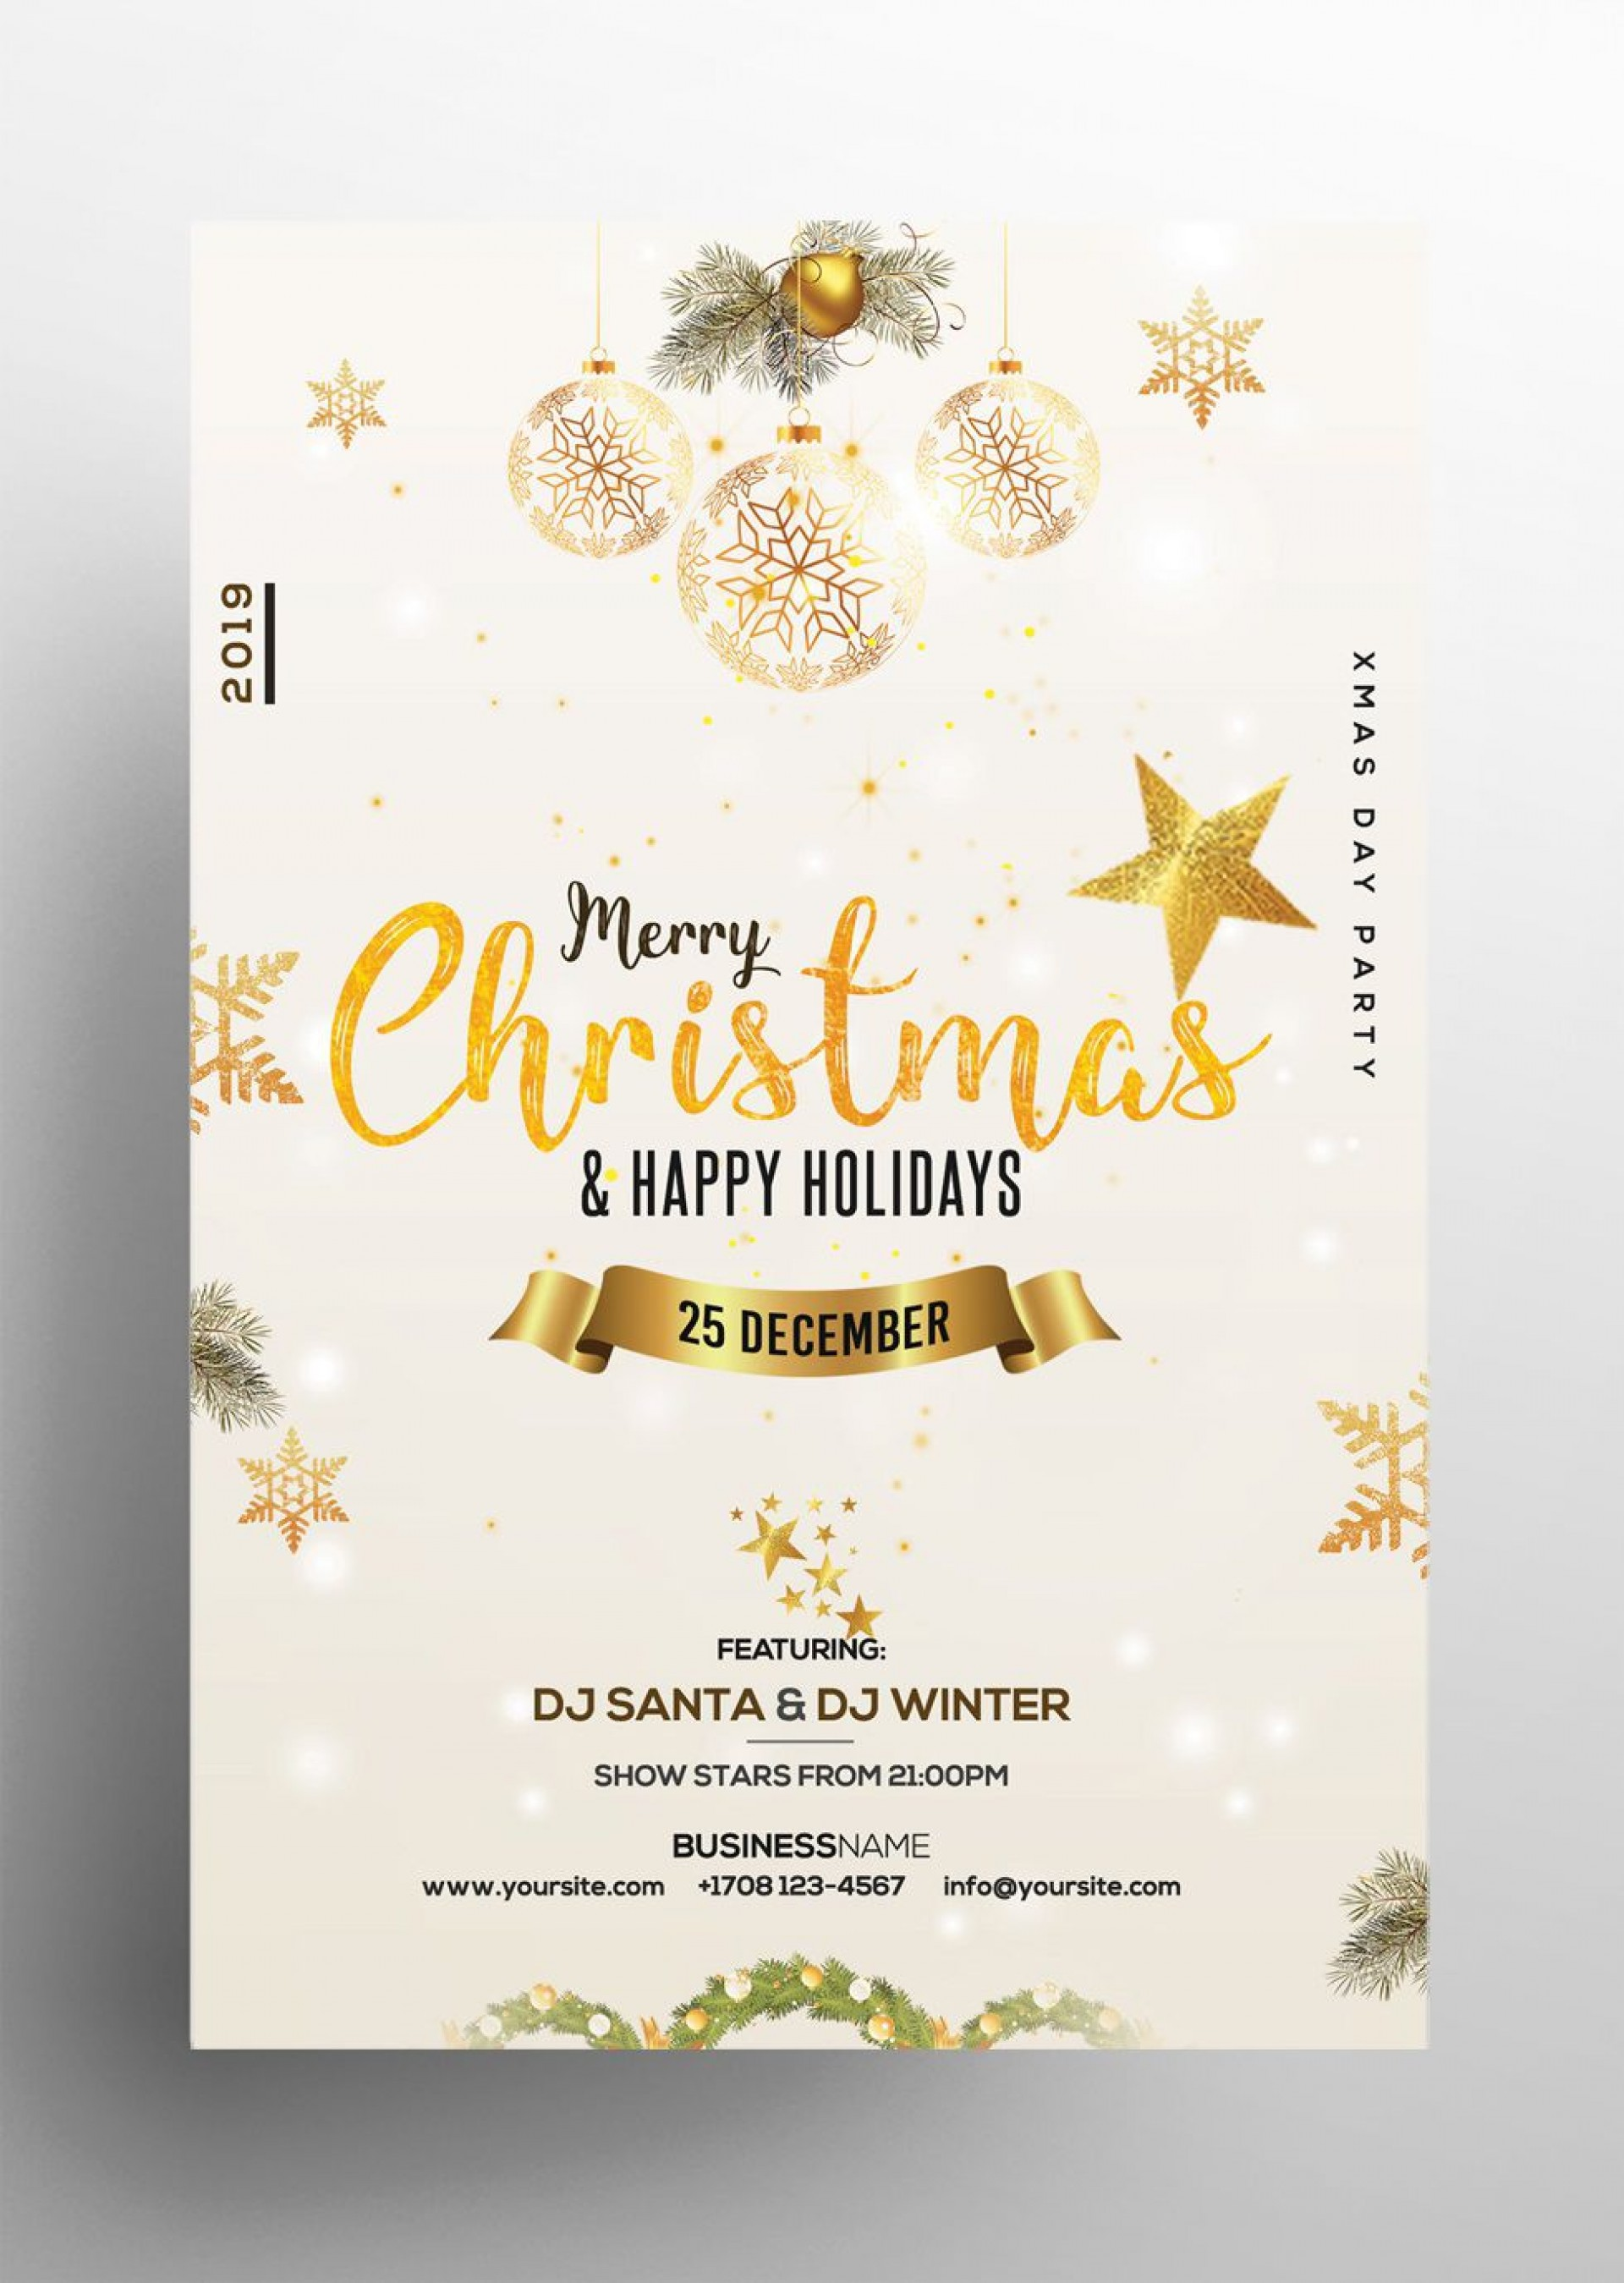 005 Dreaded Free Holiday Flyer Template Image  Printable Christma Word Sale Party1920